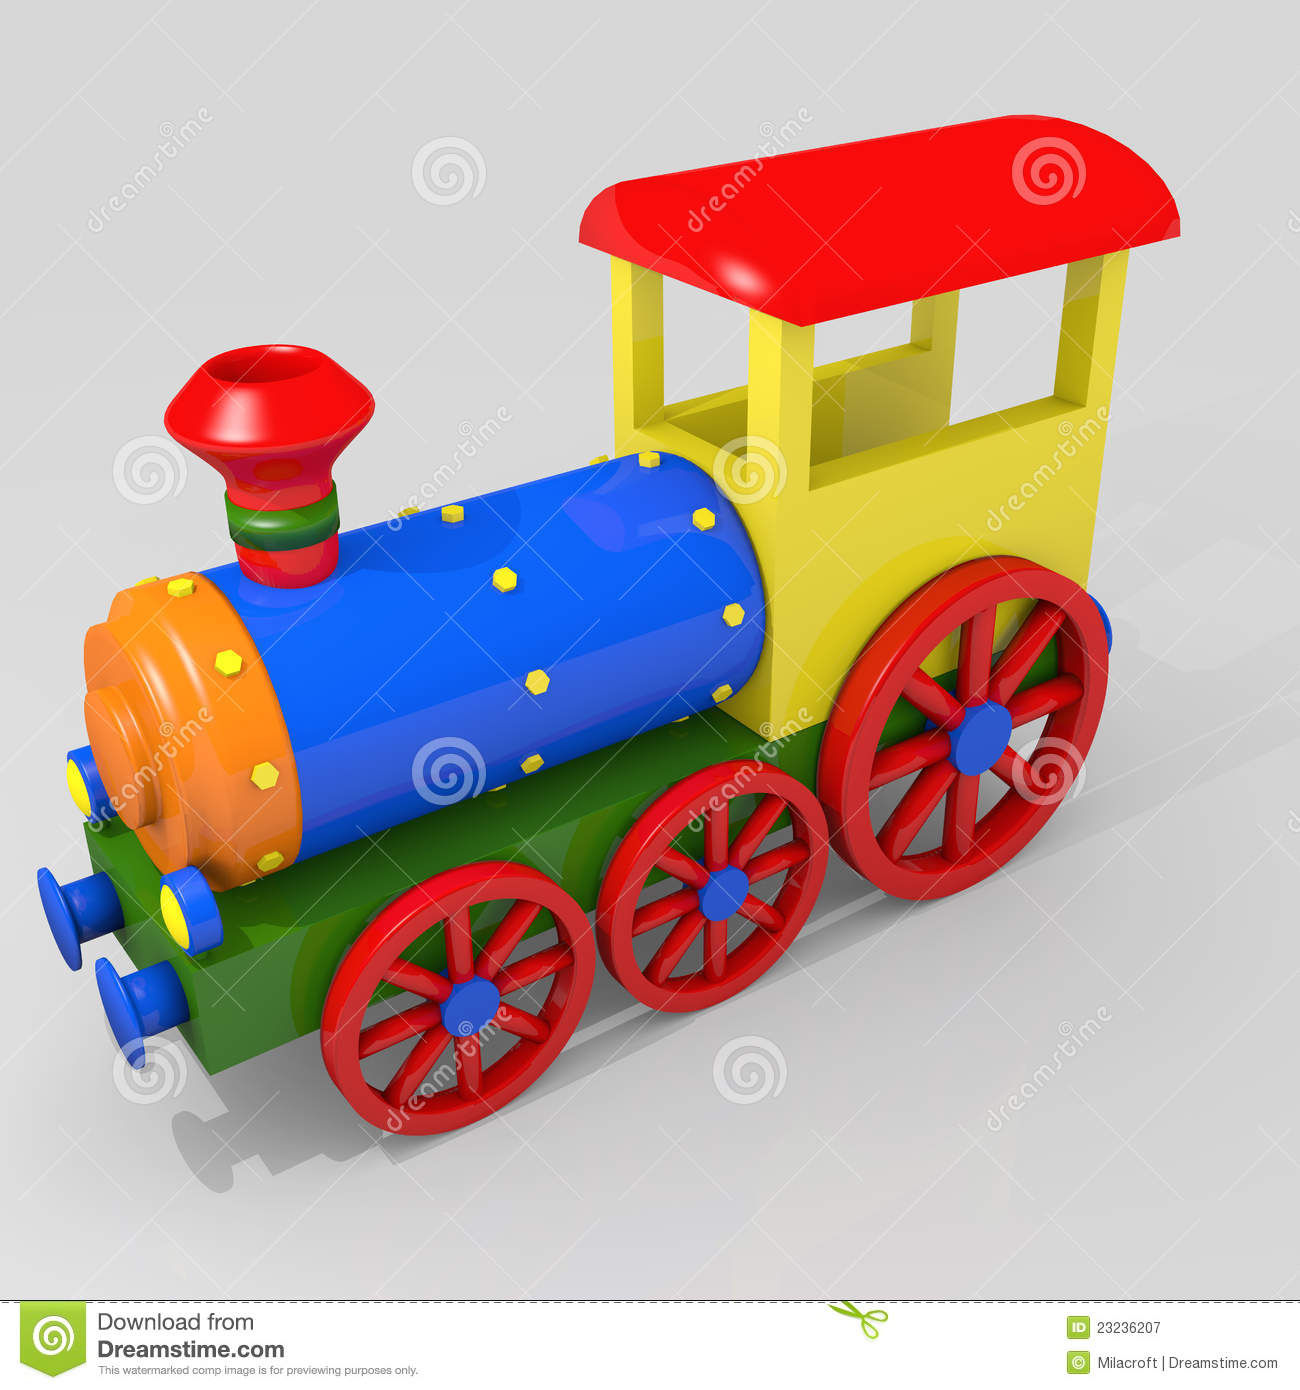 Toy Train Royalty Free Stock Photography - Image: 23236207